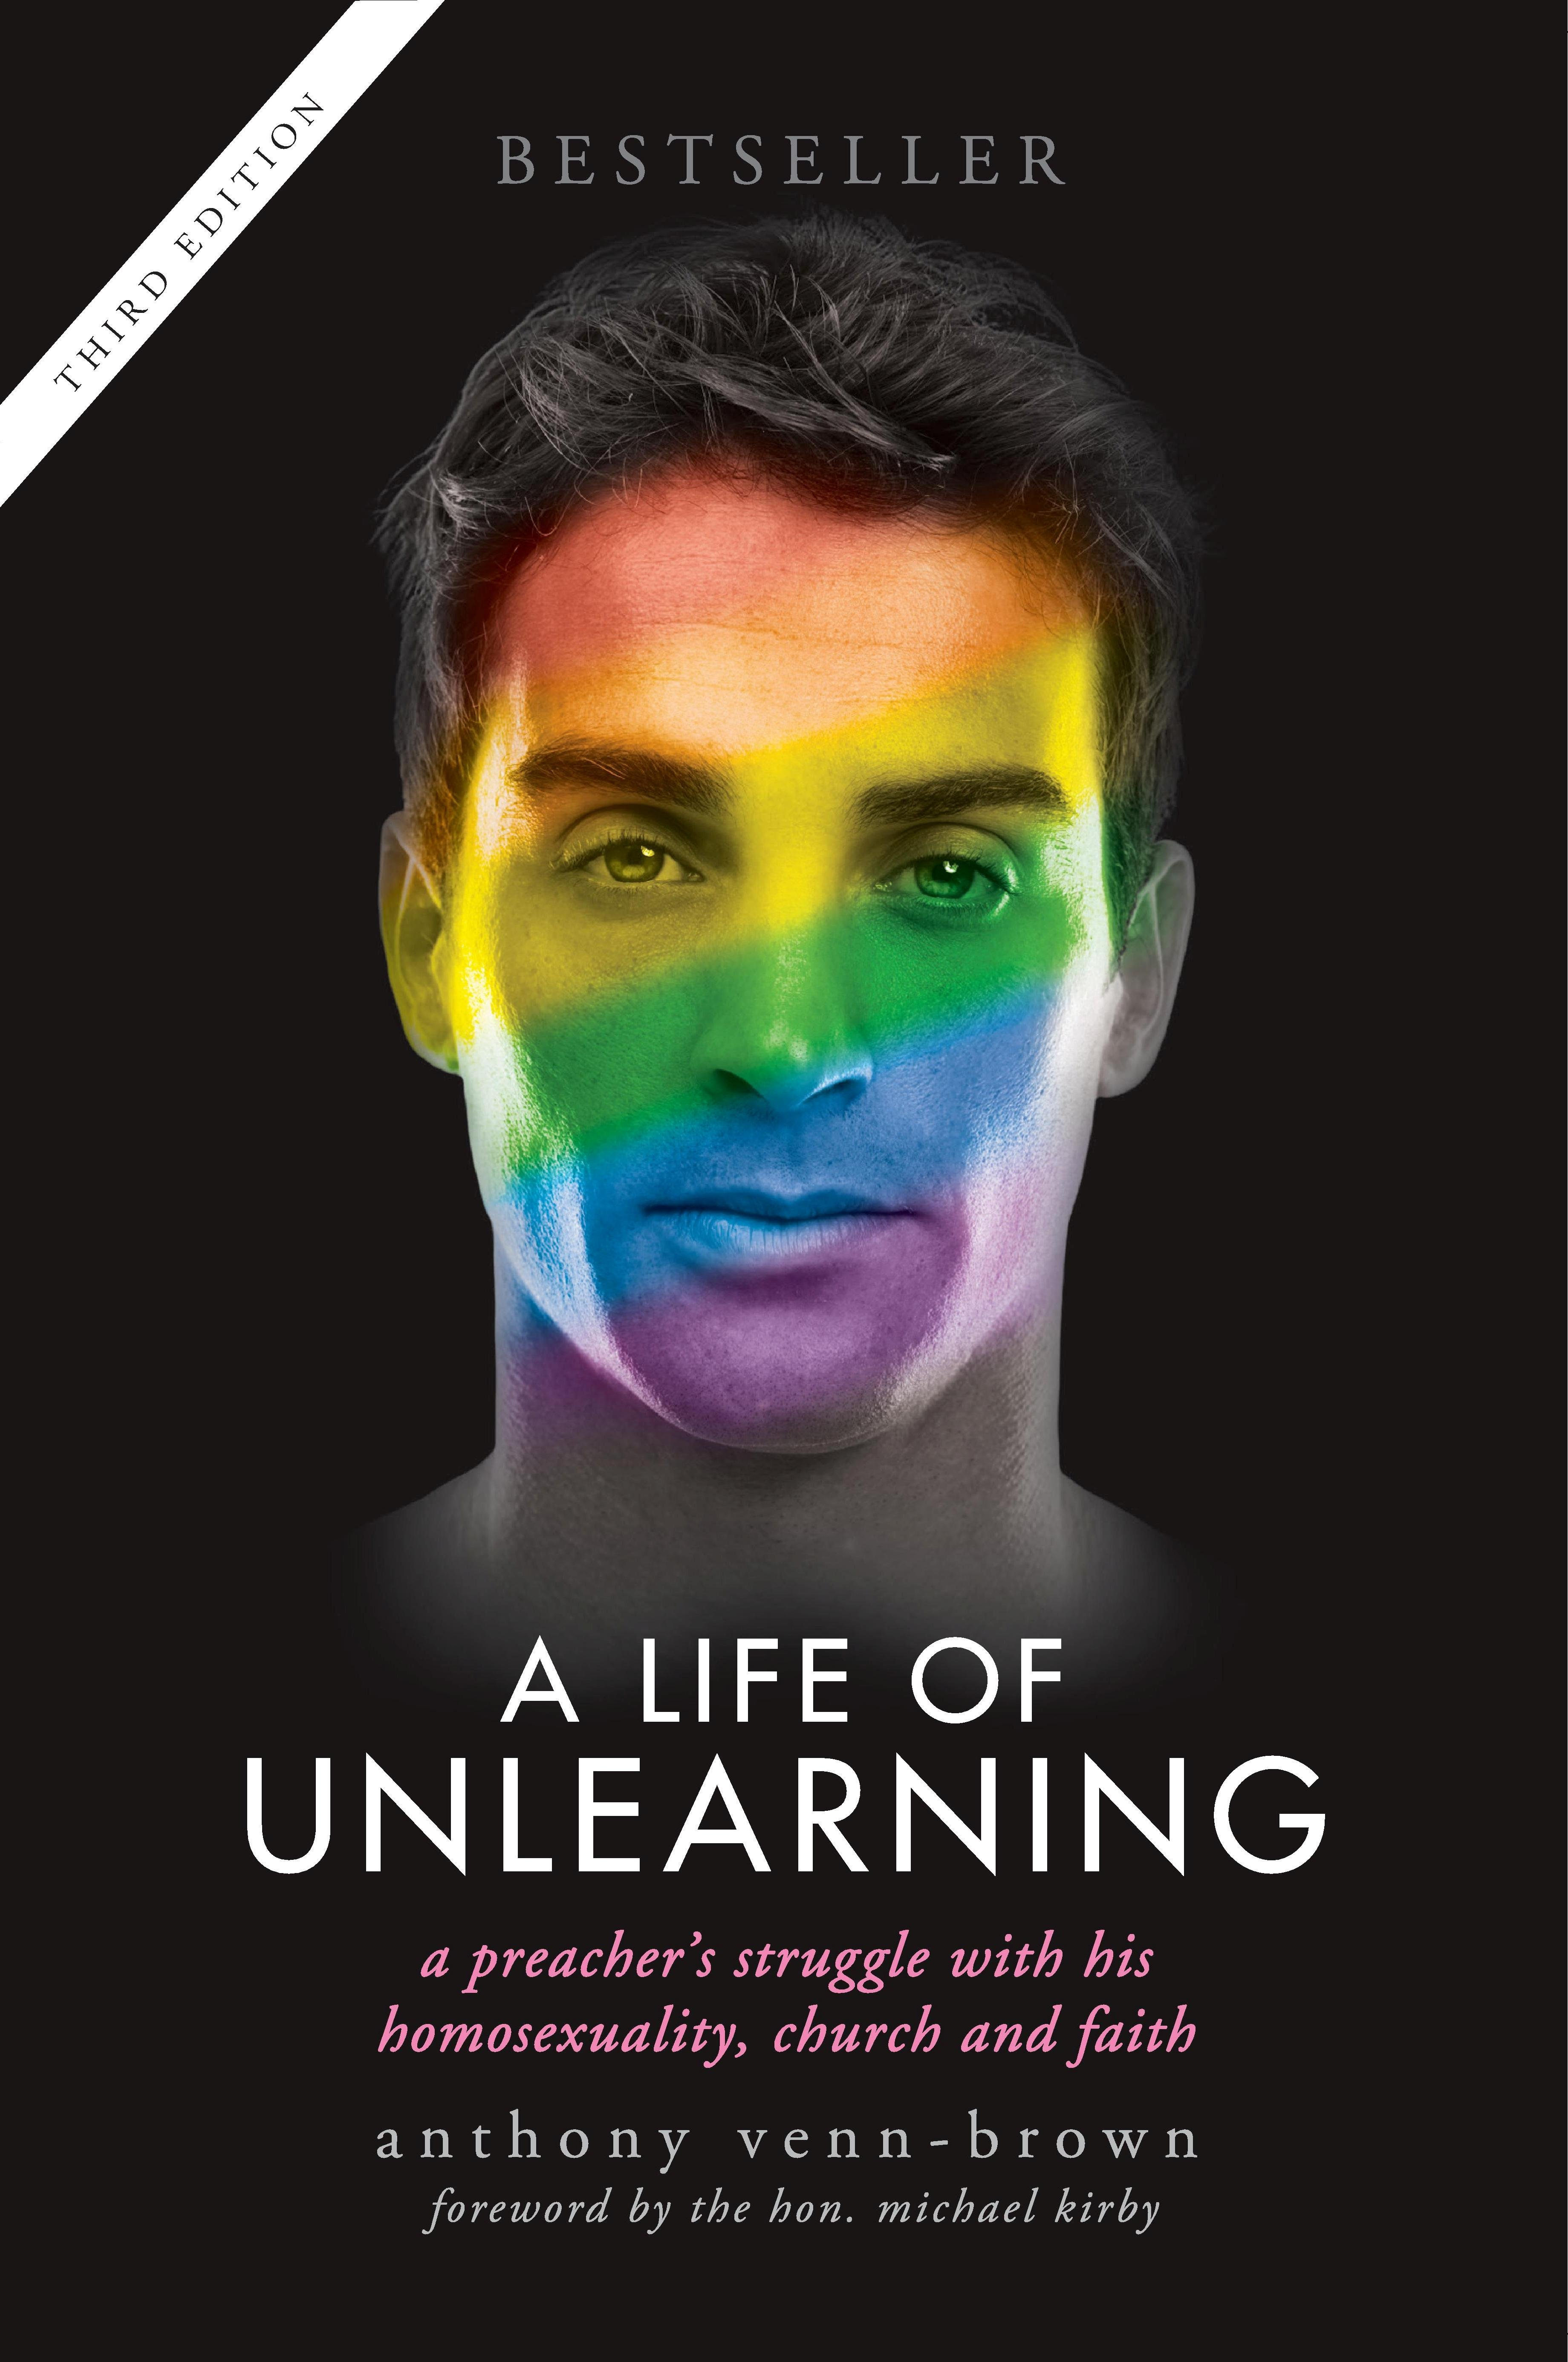 a life of unlearning, anthony venn-brown